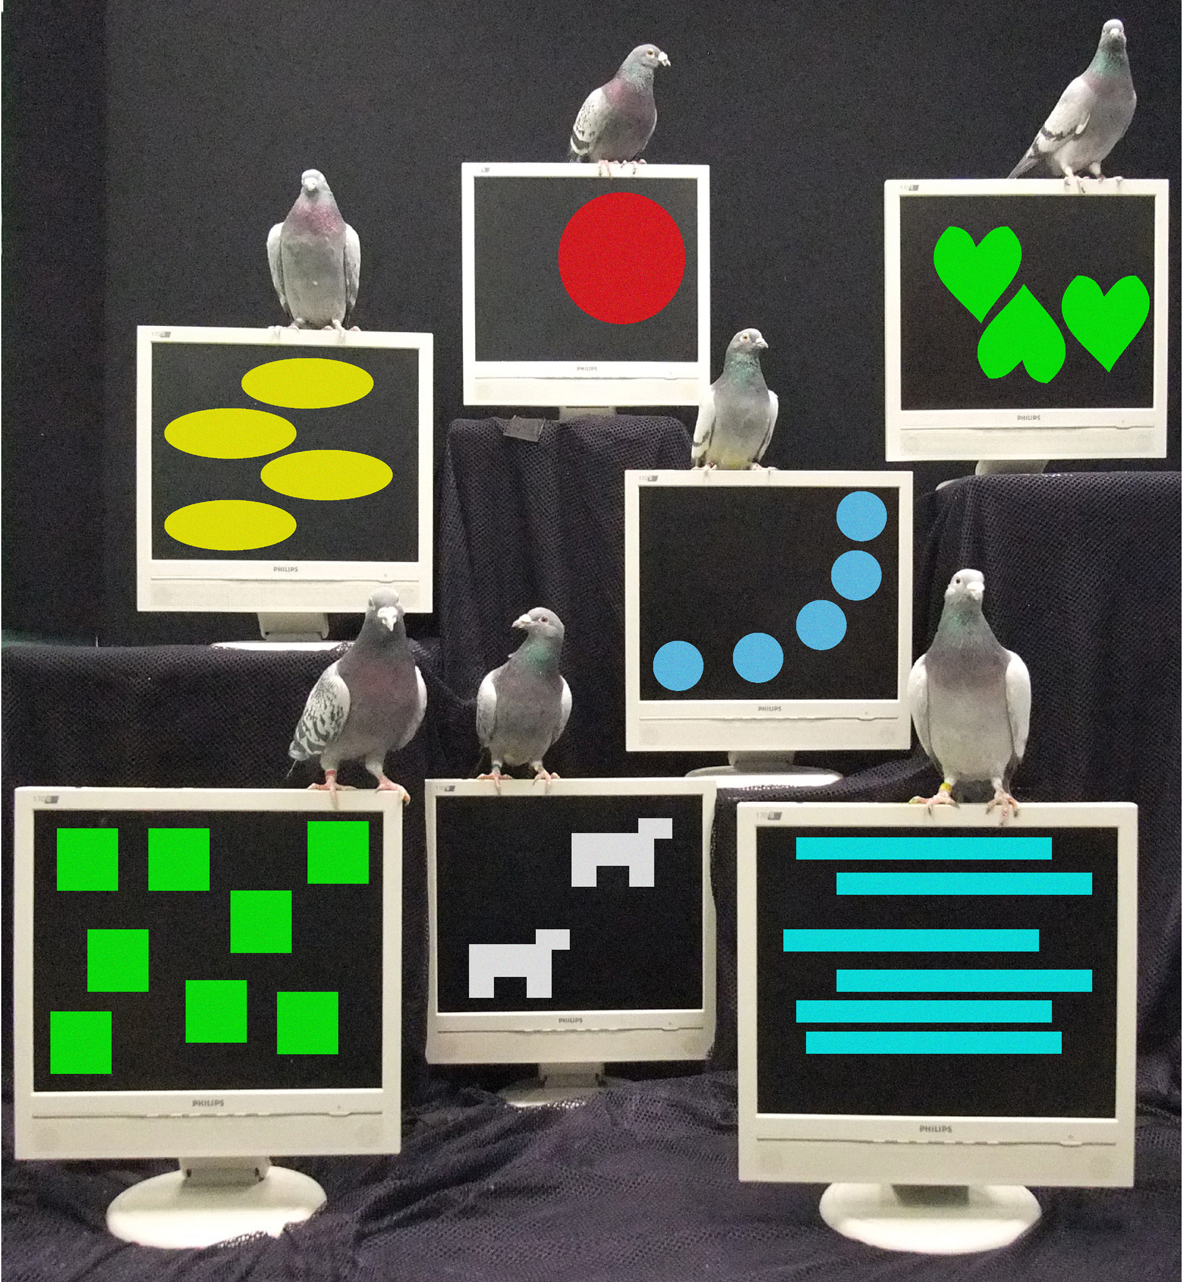 Seven pigeons sit atop seven computer screens, each screen displays a set of different shapes in different colors